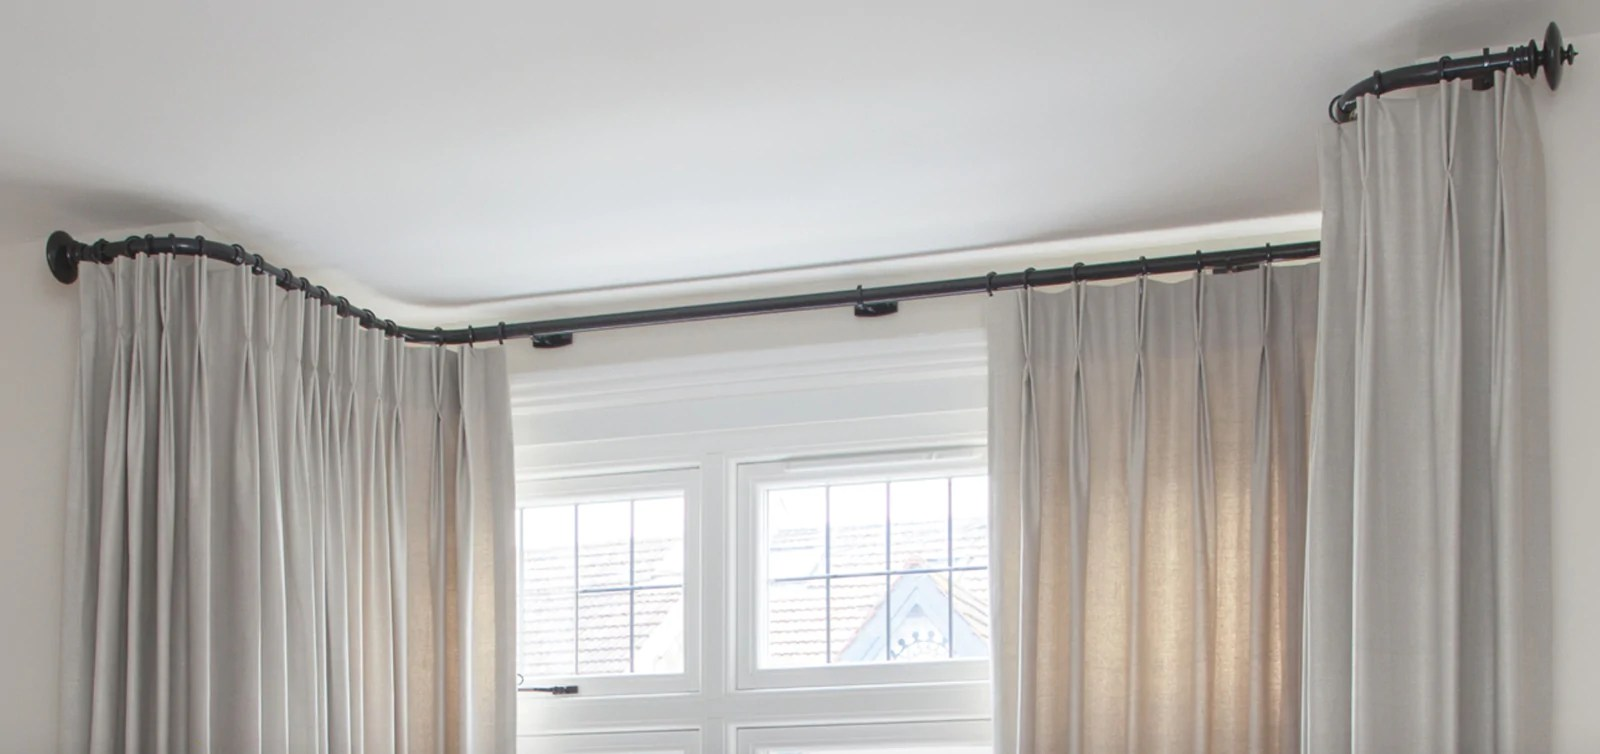 bay window curtain poles made to